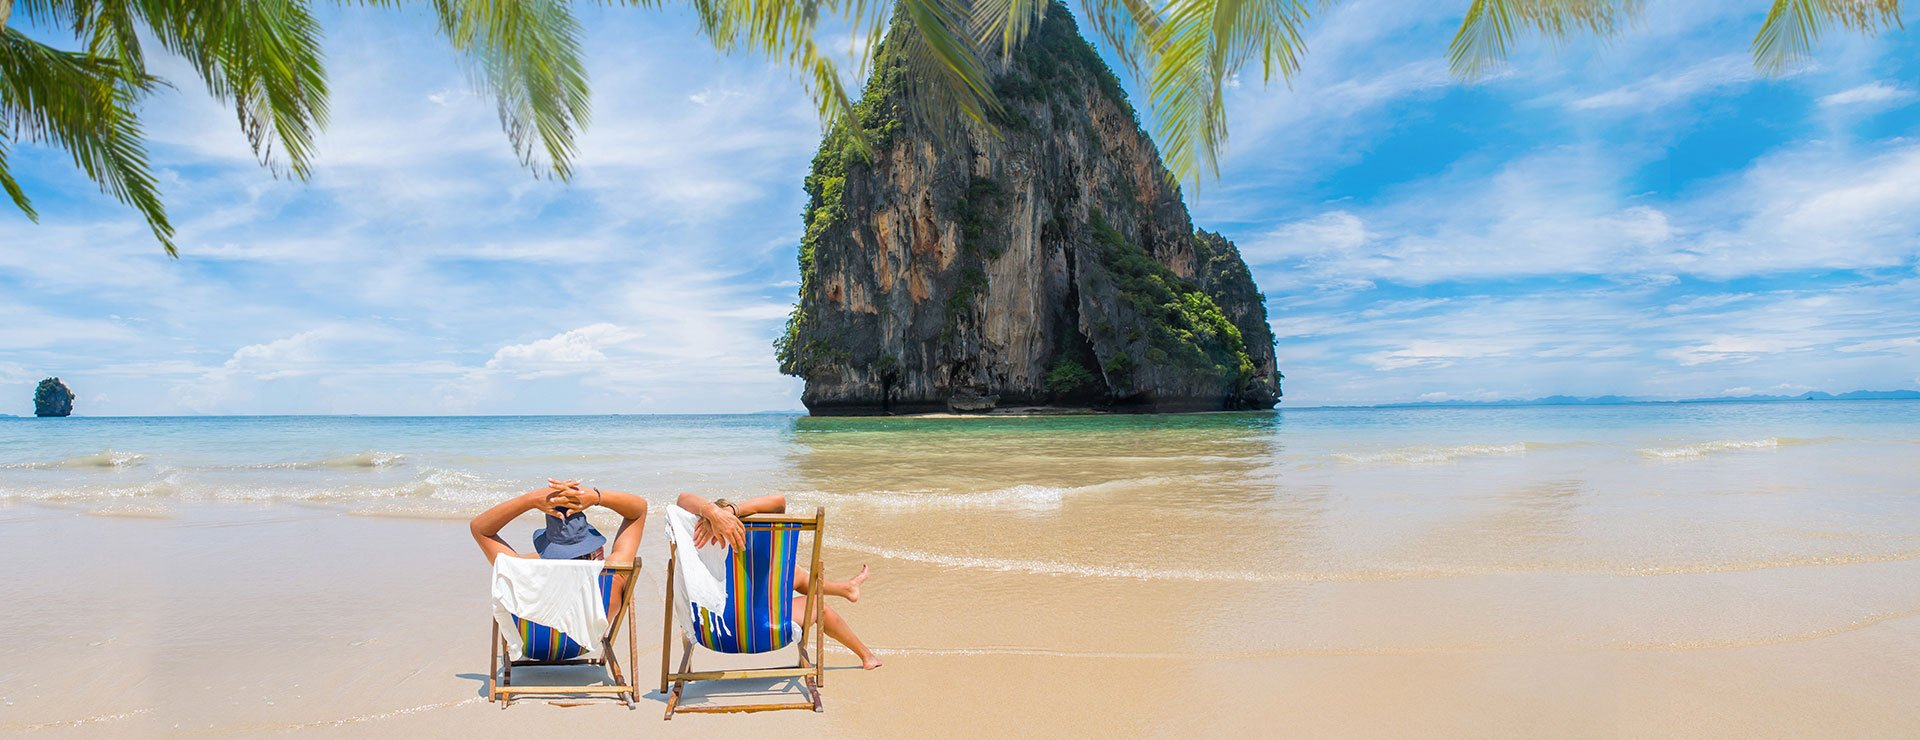 Top 5 Thailand destinations in 2017 by Trip Advisor users